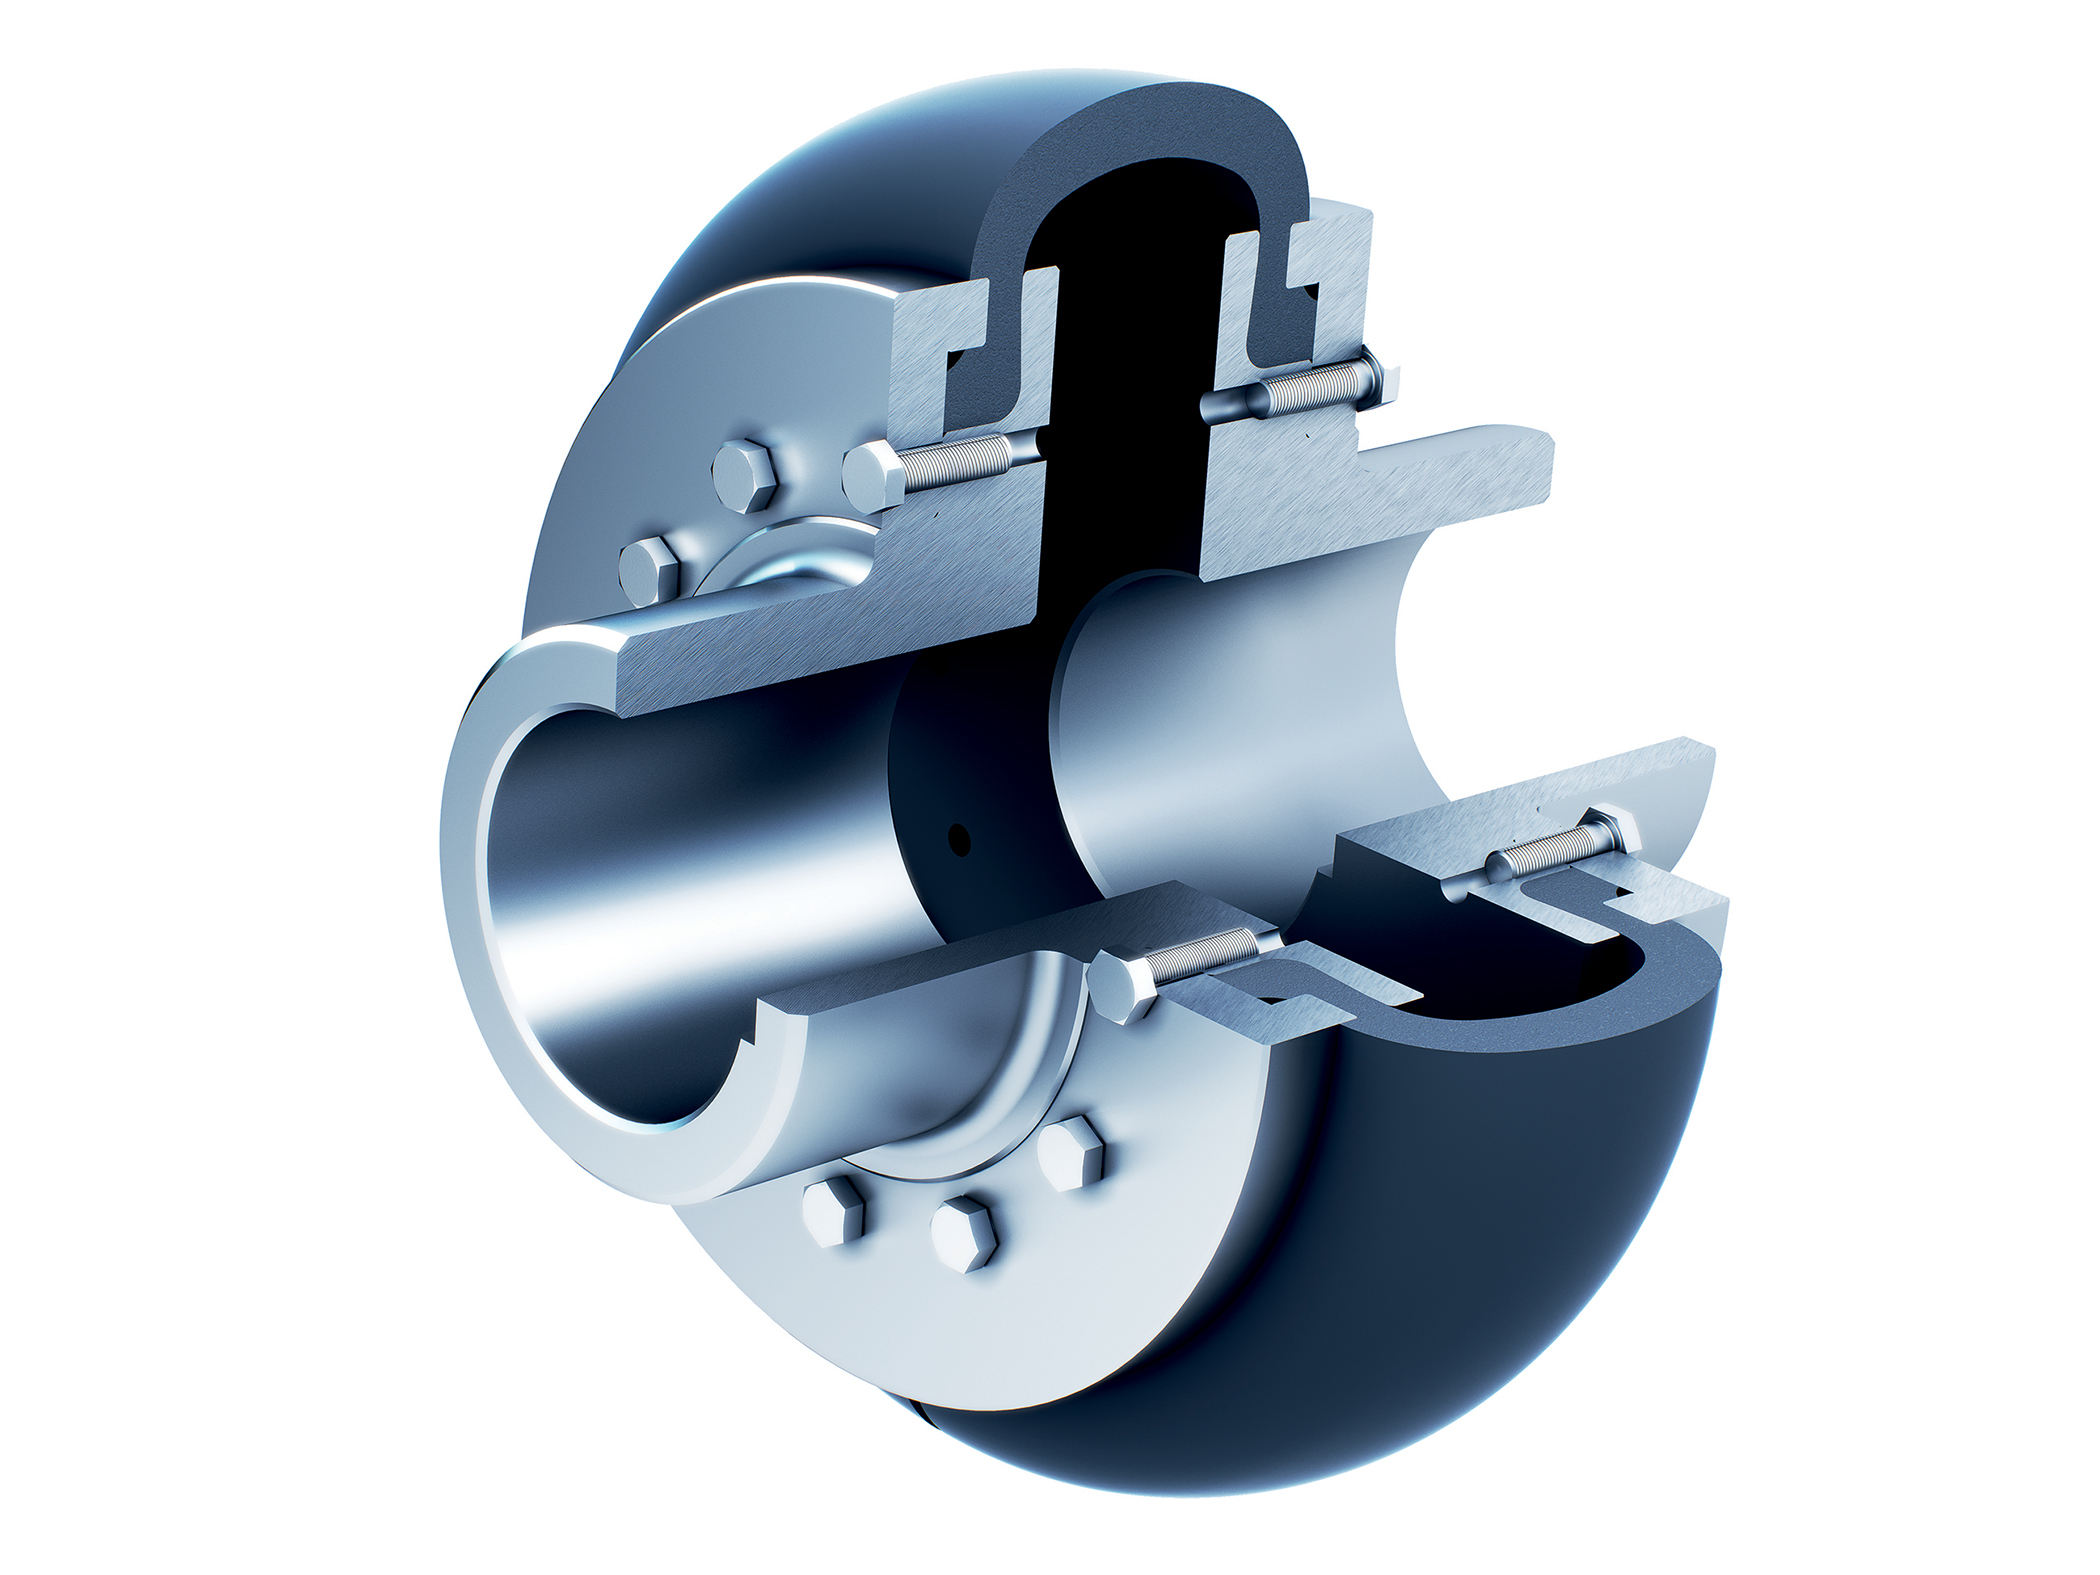 Stromag Periflex® tyre couplings accommodate misalignment and minimise maintenance